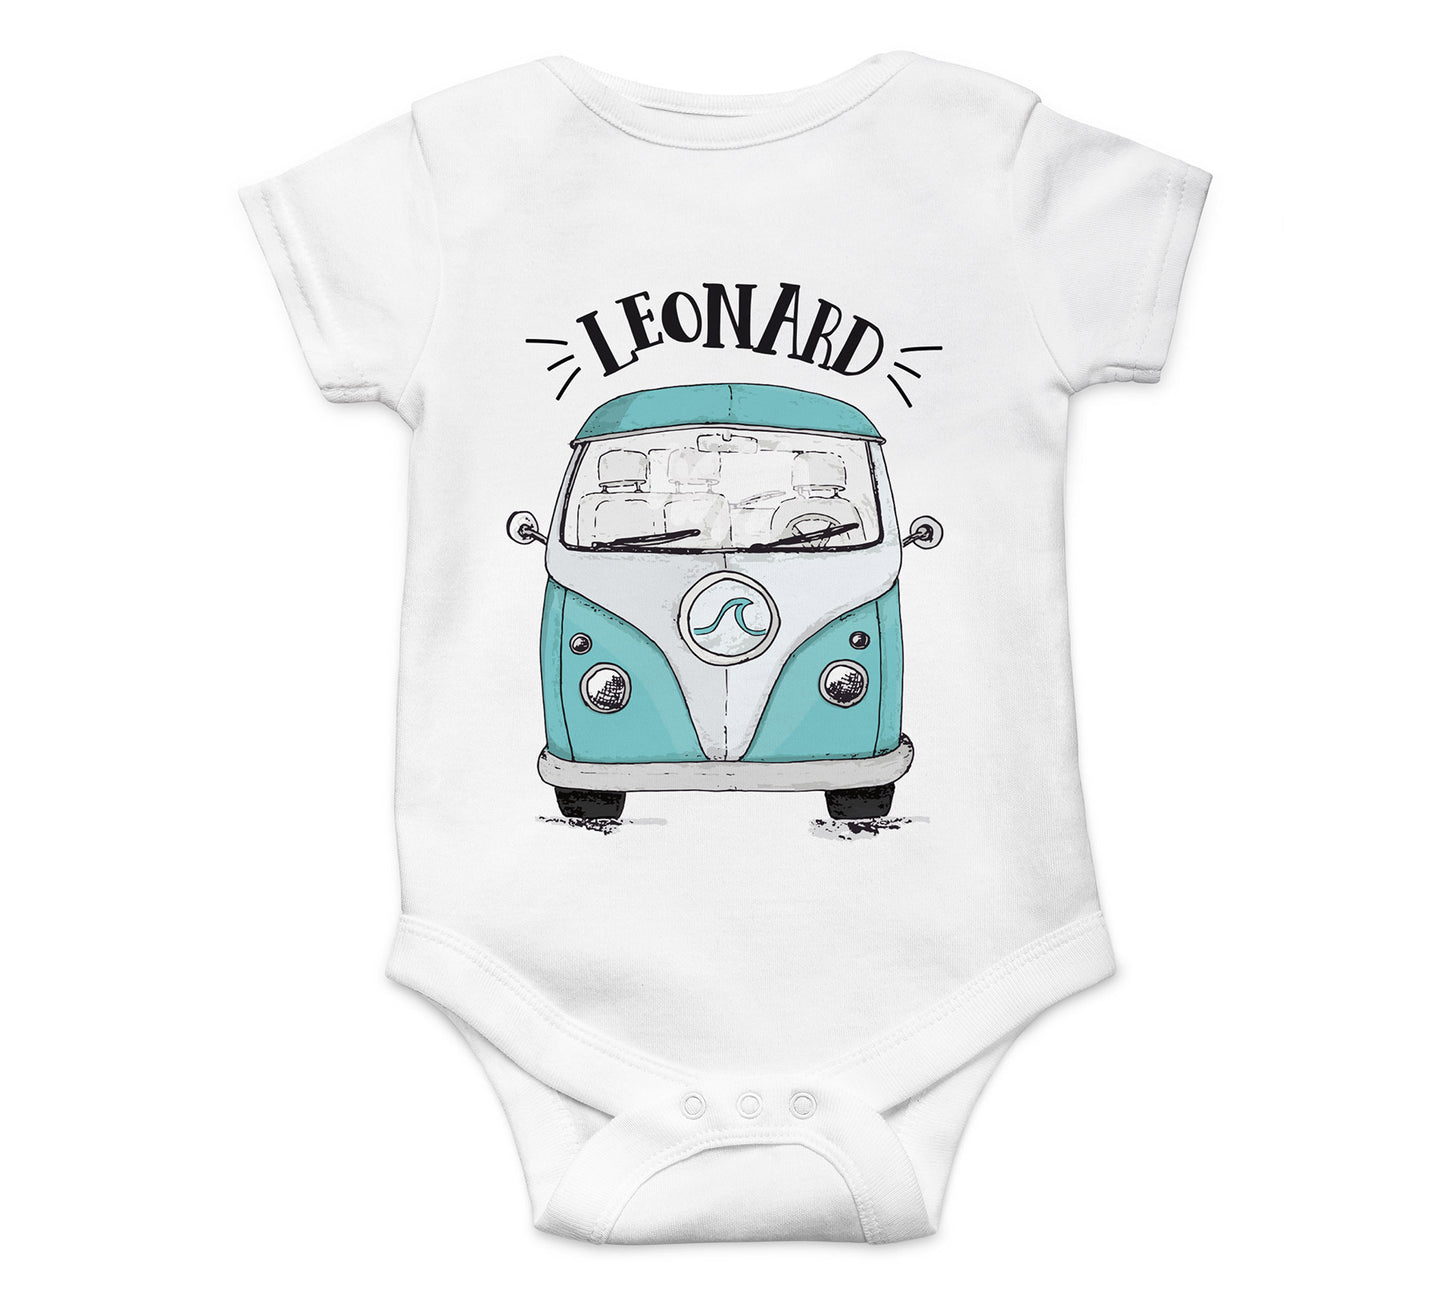 Baby Body Strampler Bus Bulli Camper mit Wunschname BS004